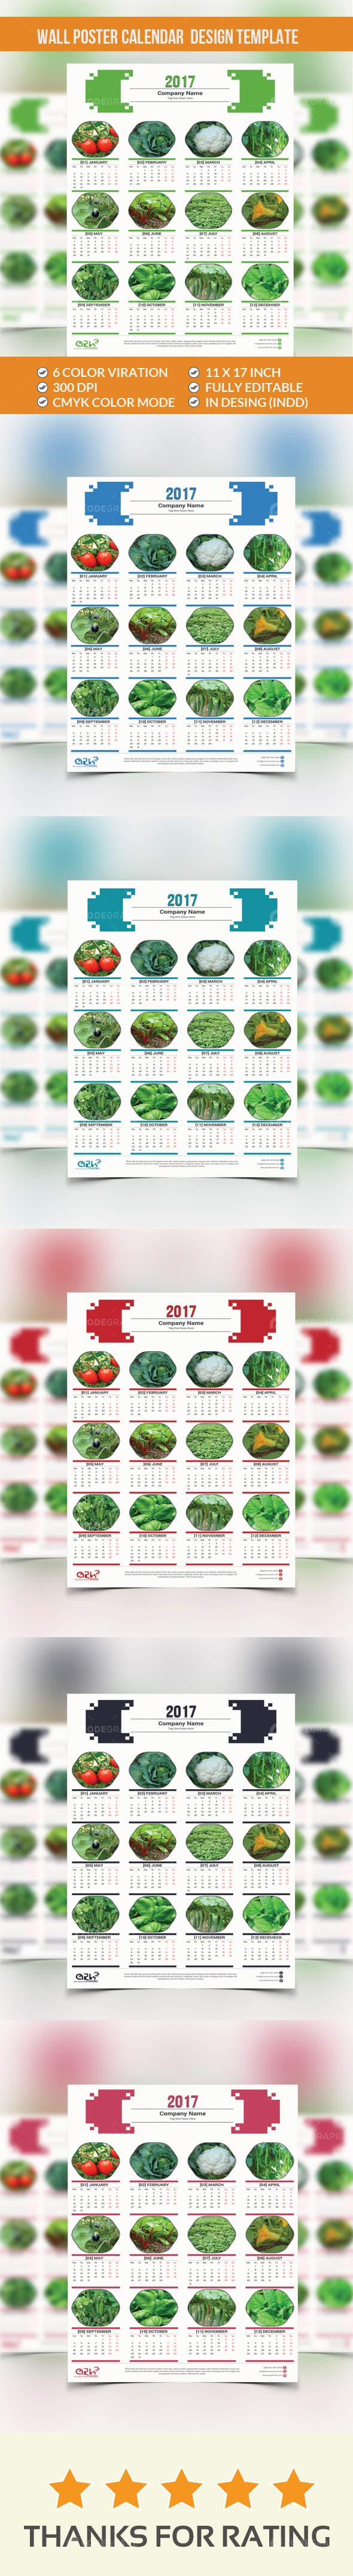 Wall Poster Calendar Design Template